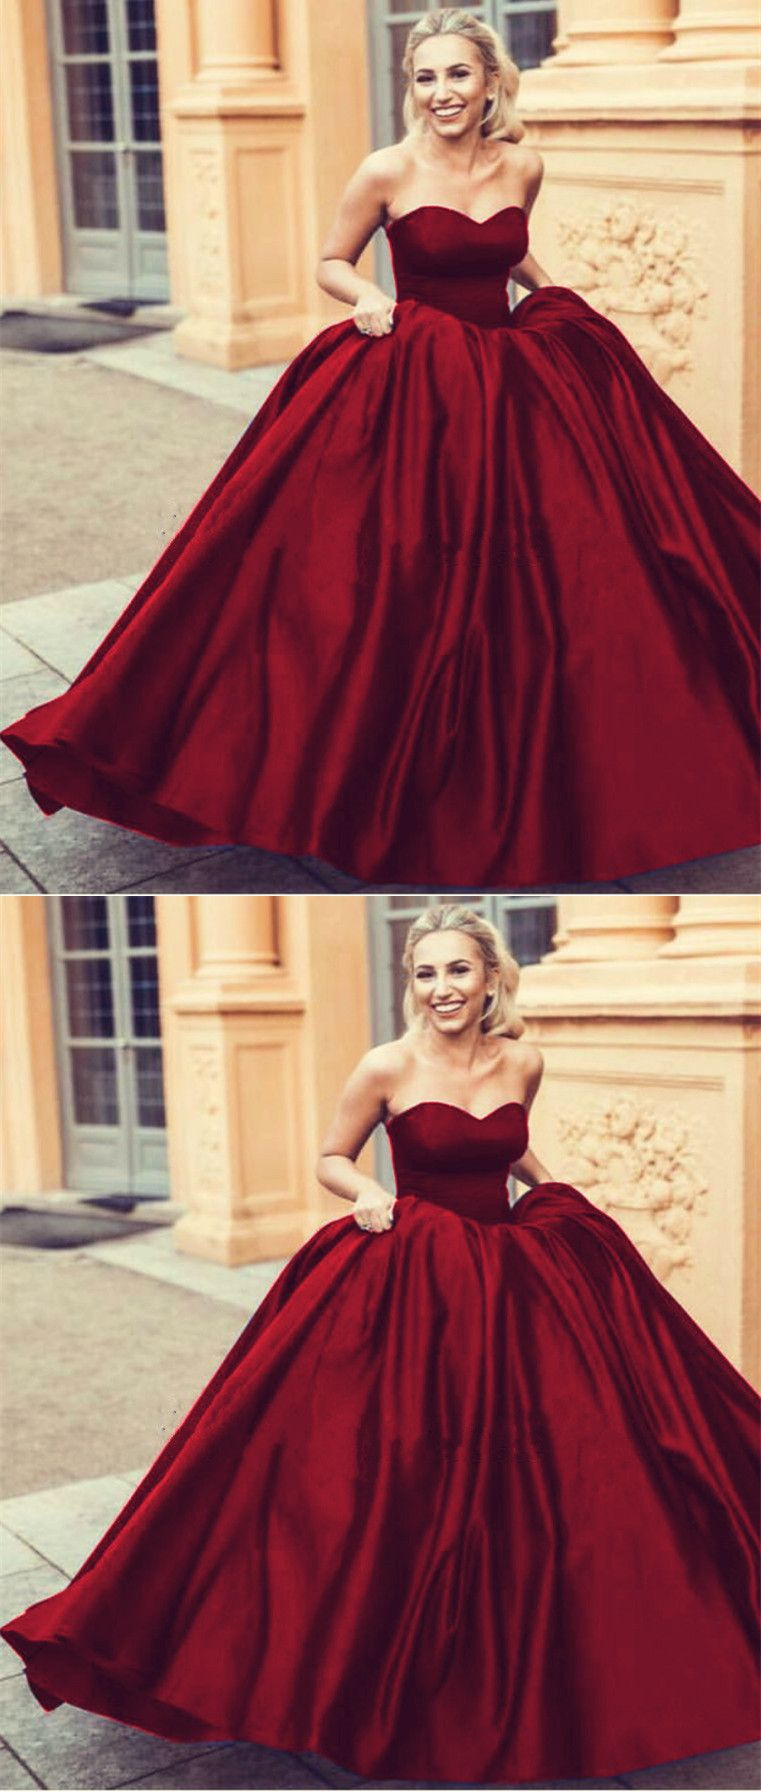 Wine Red Sweetheart Ball Gowns Satin Wedding Dresses 2019 Wedding Dresses Satin Ball Gowns Red Wedding Dresses